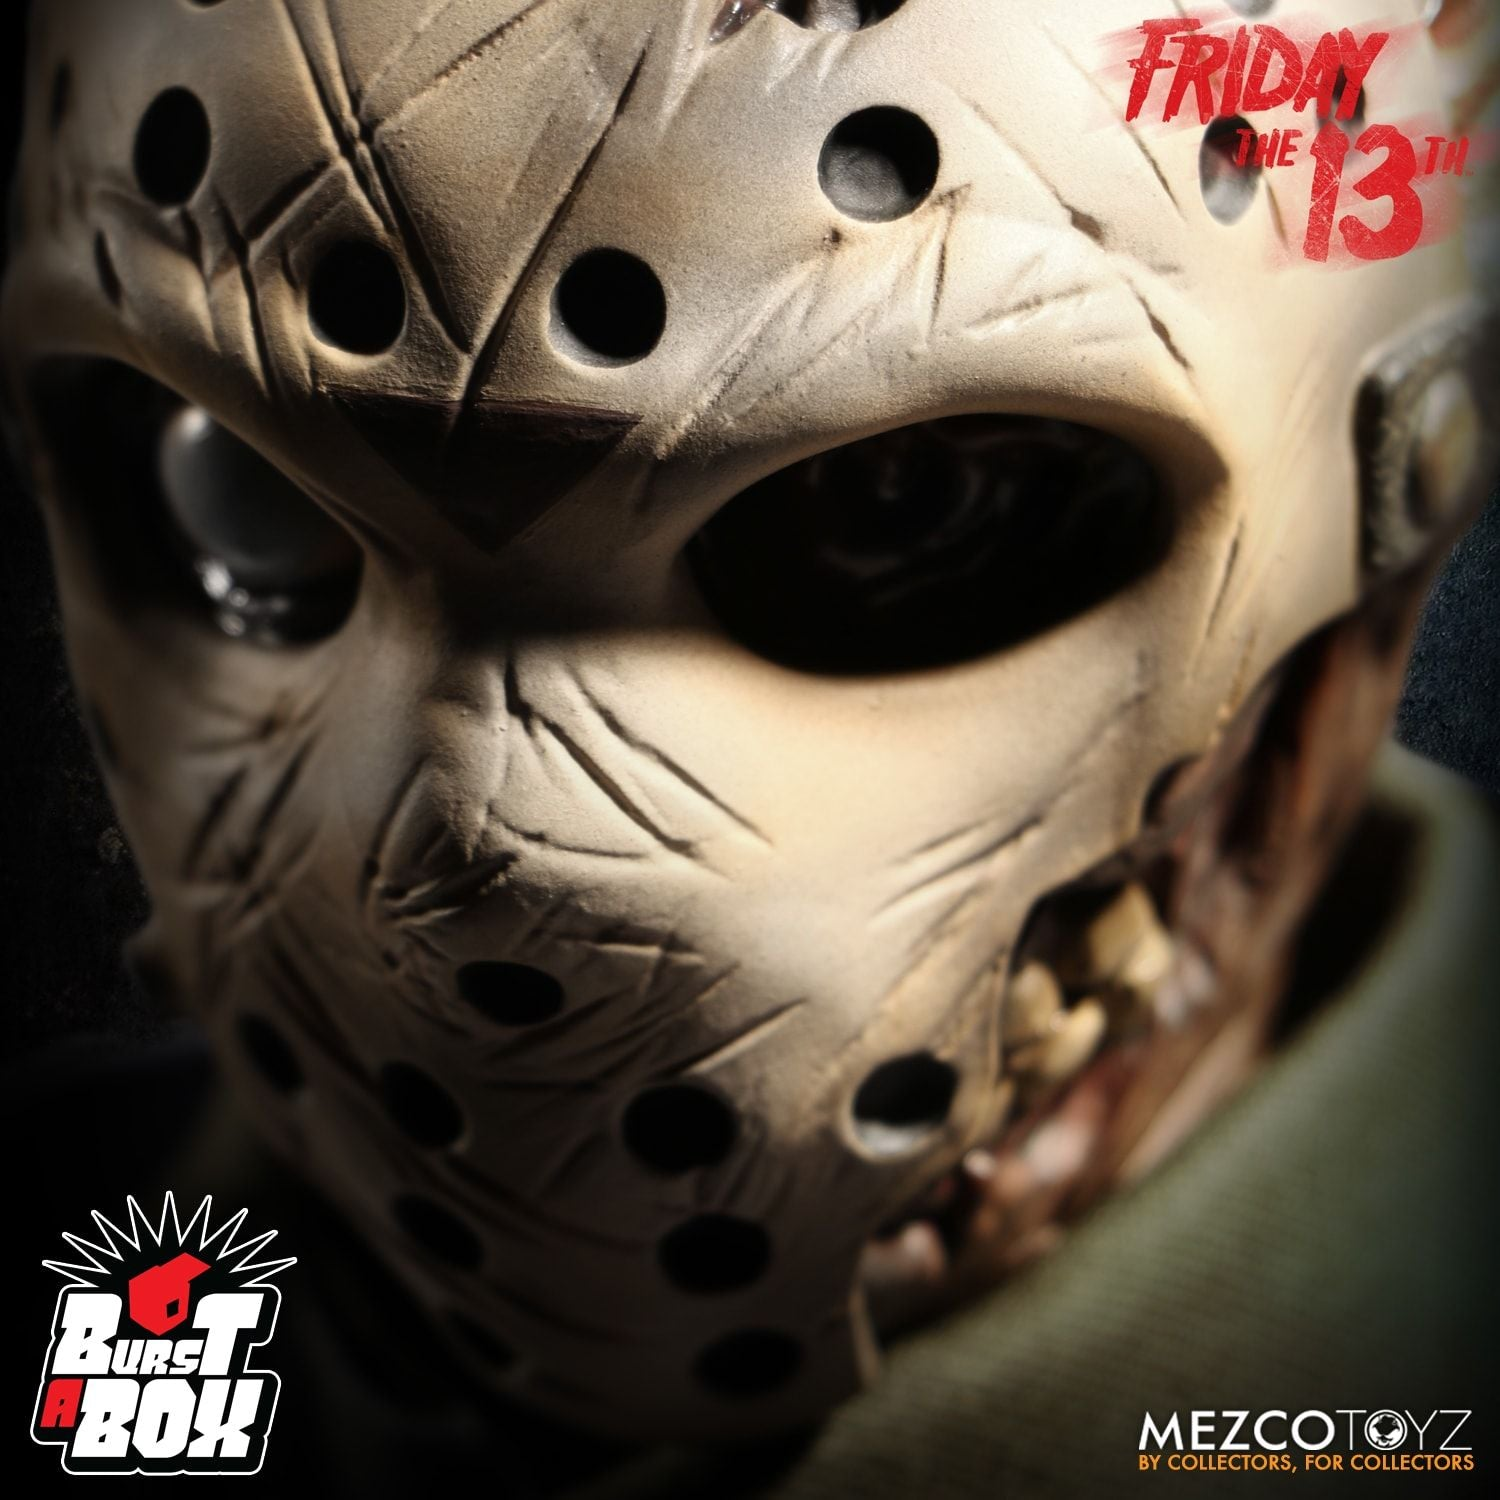 Mezco - Burst-A-Box - Friday The 13th Part VII - Jason Voorhees